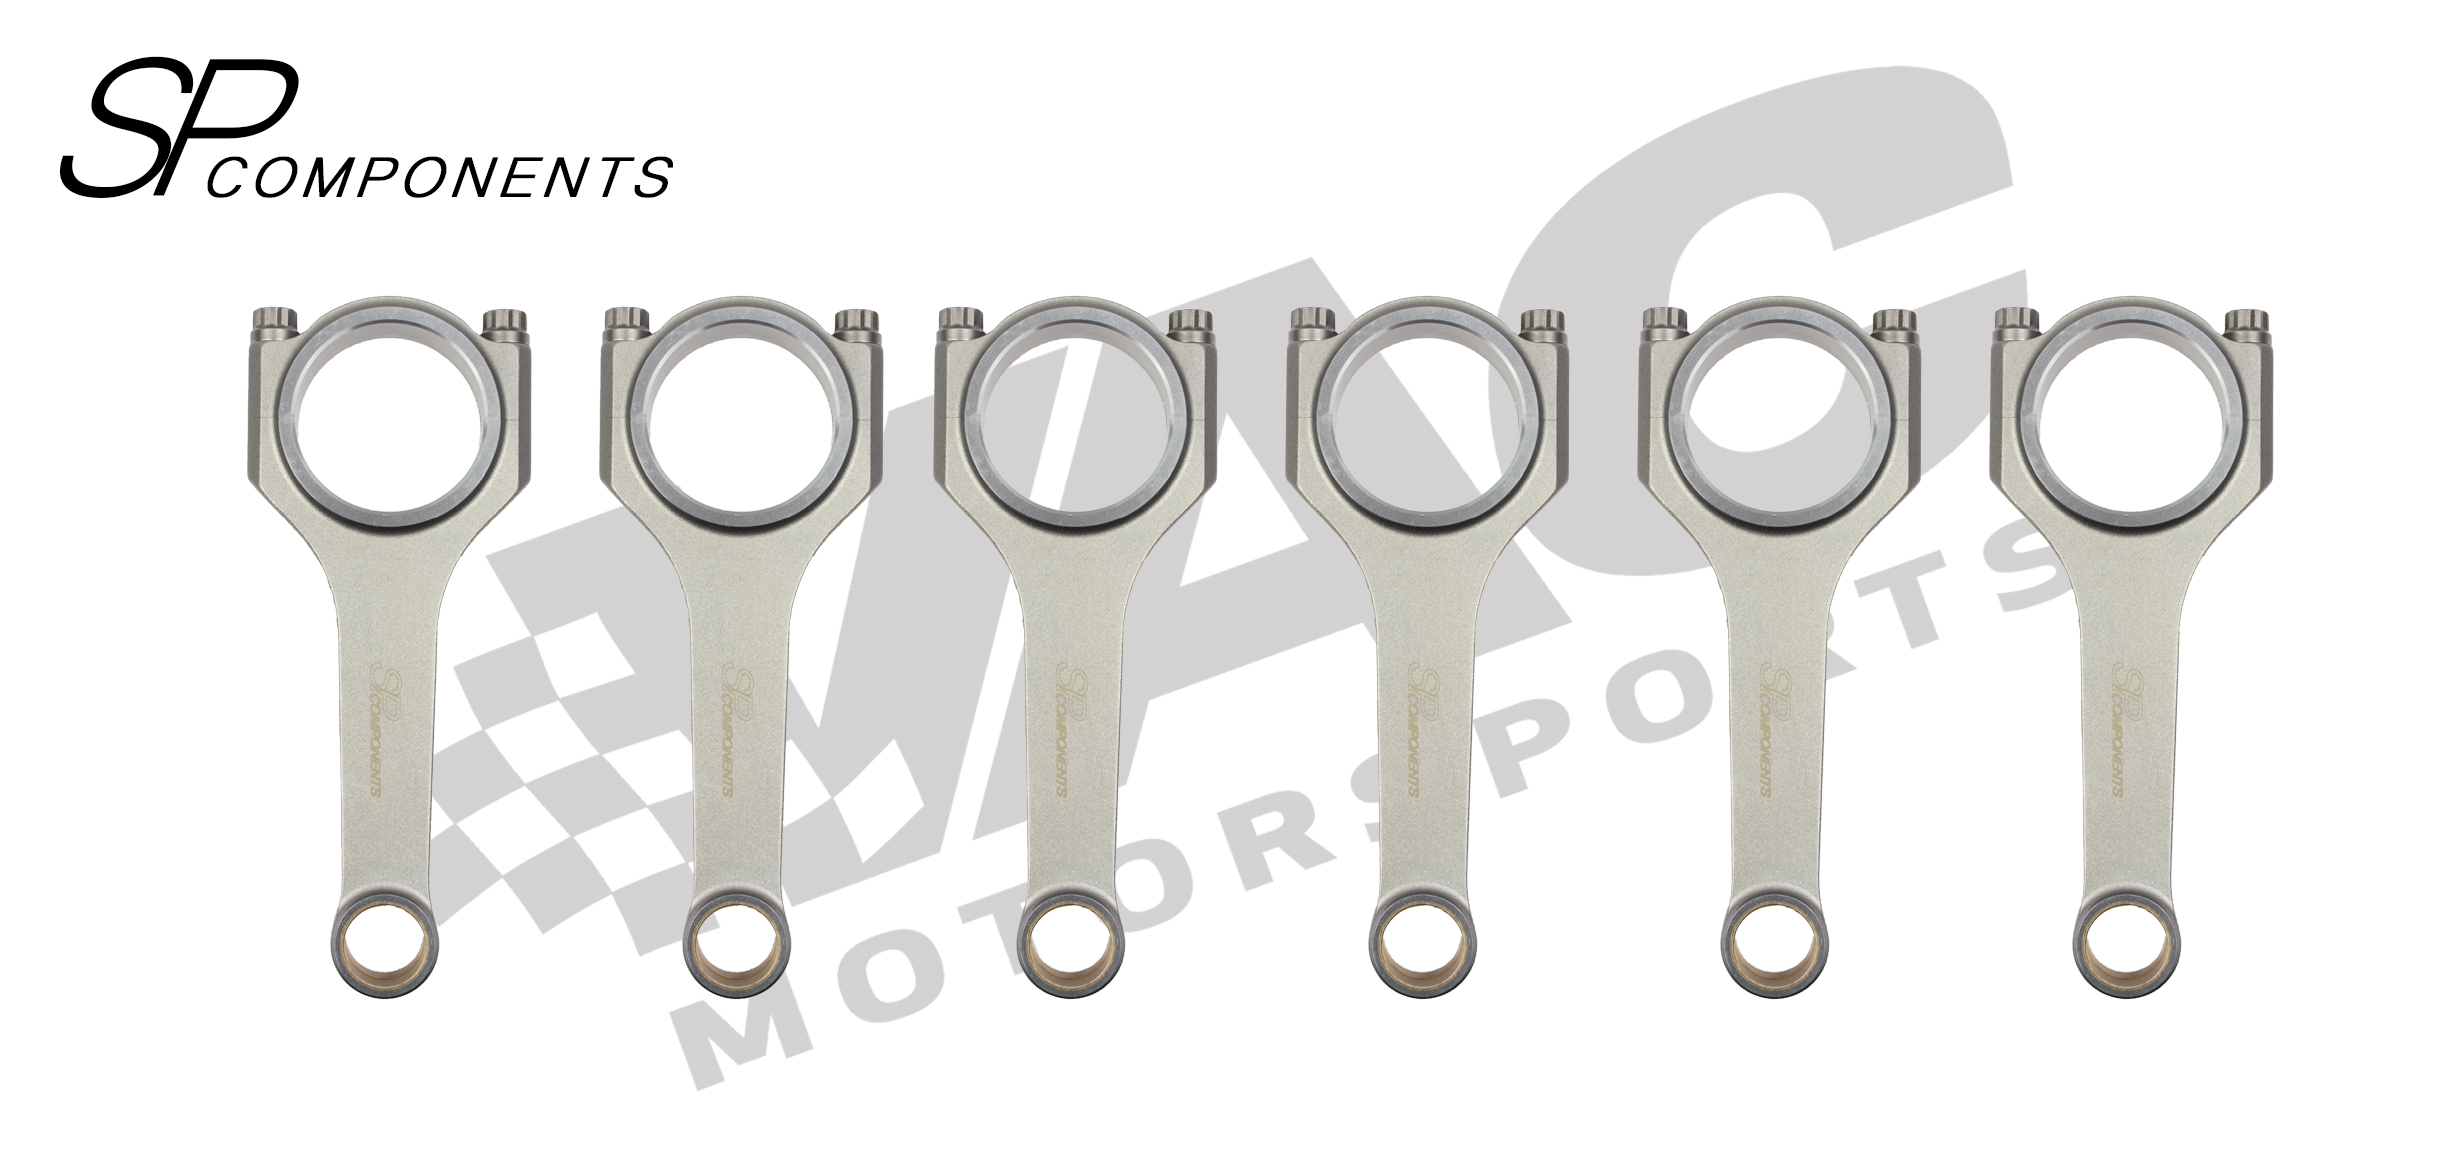 SP Components - S50b32 Euro Forged Connecting Rod Set MAIN